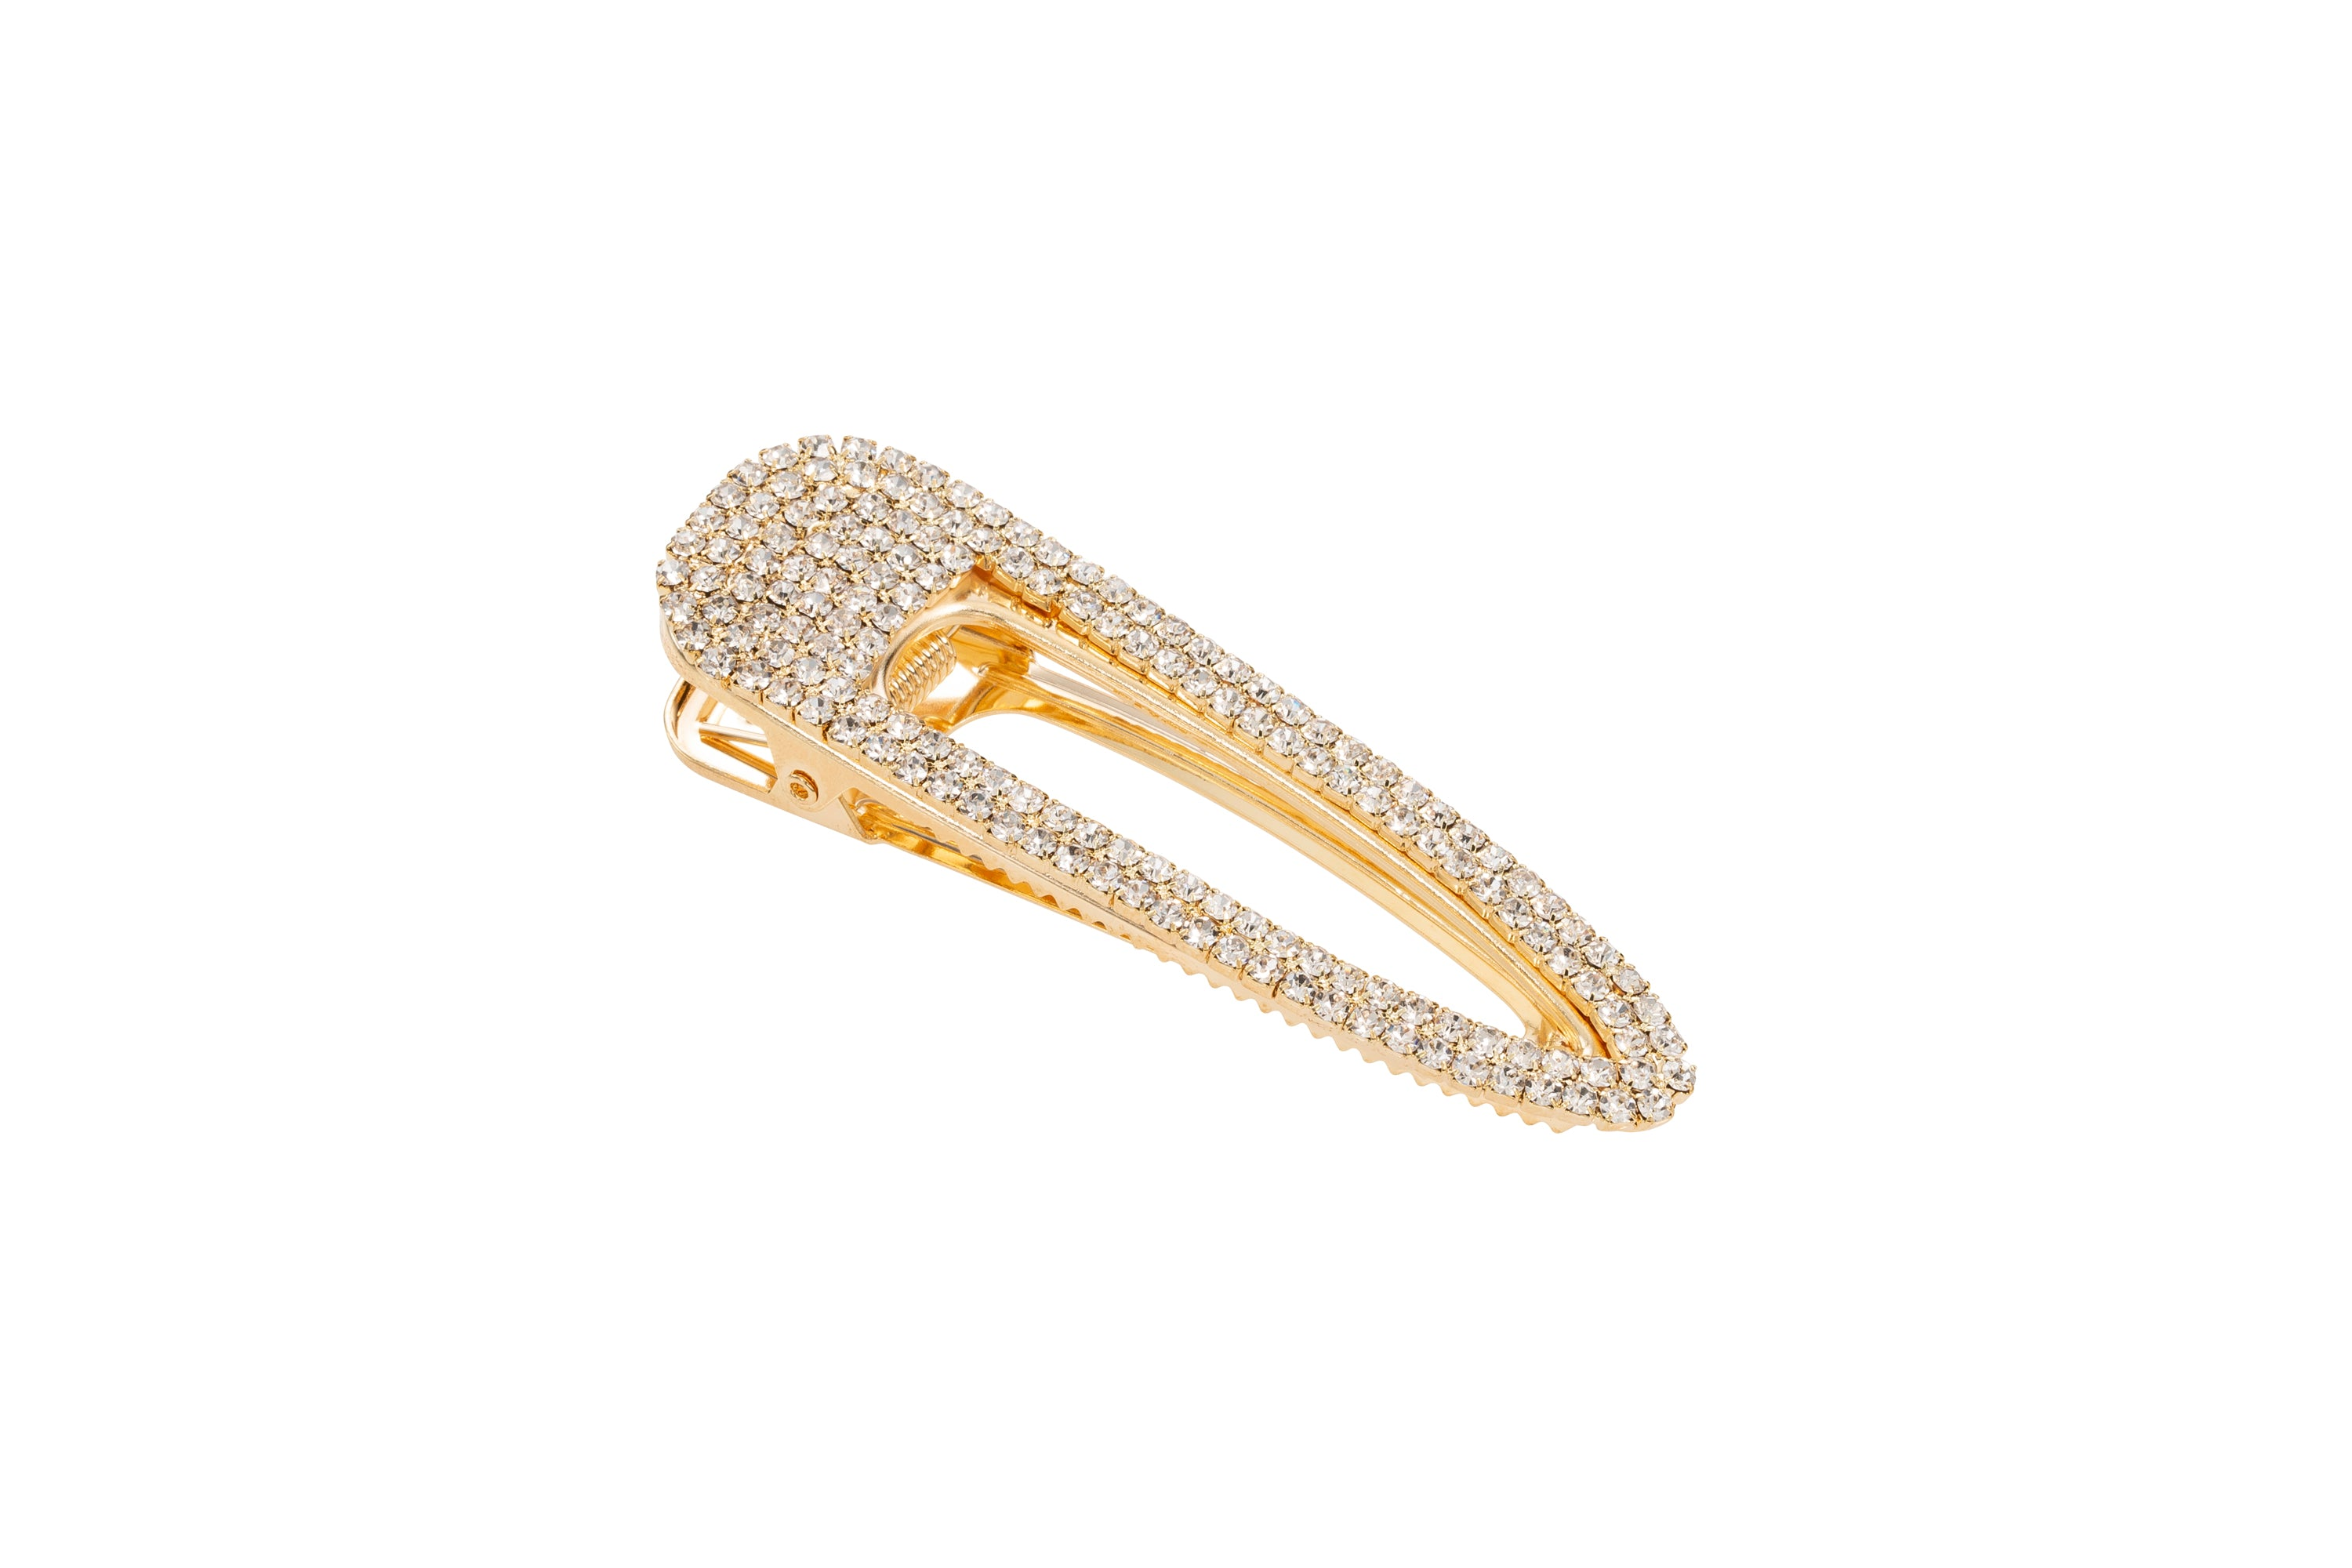 Glam Seamless Gold Crystal Barrette